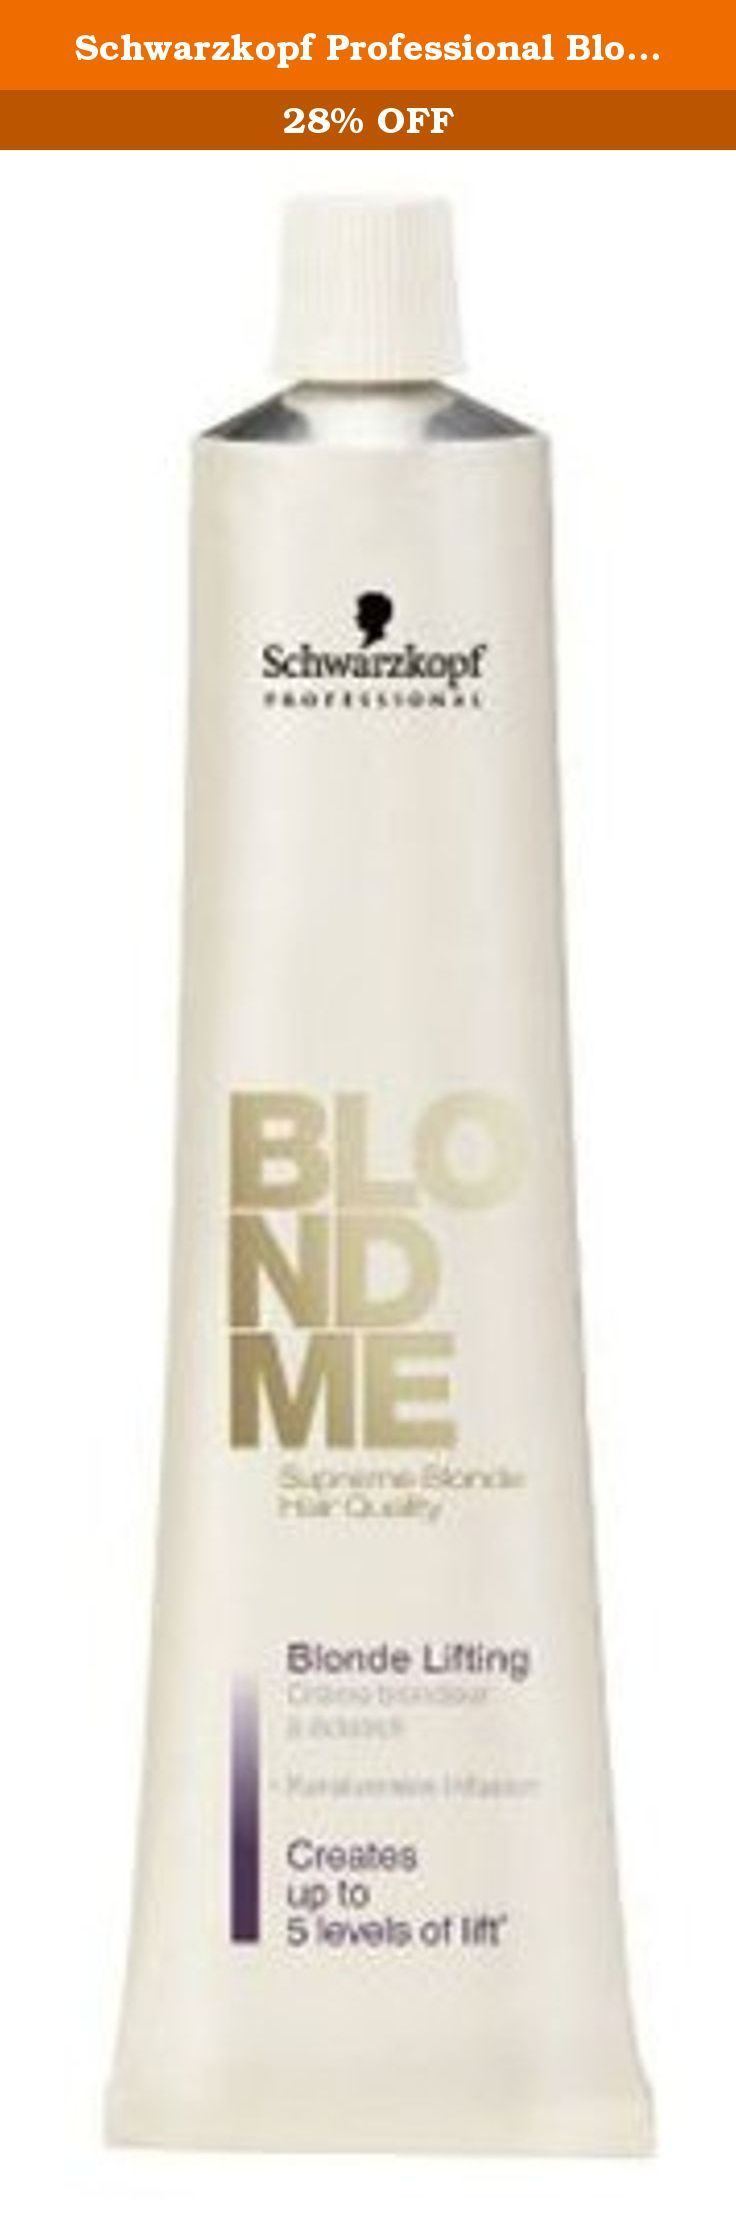 Schwarzkopf Professional Blond Me Blonde Toning - Sand - 2.1 oz. What it is: The new BLONDME toner color formula contains support POLYMERS. What it does: Can be mixed with the BLONDME Brightening and Weisskaschierungs creme. What else you need to know: Low ammonia content for a more gentle hair color. Potential for infinite creativity.